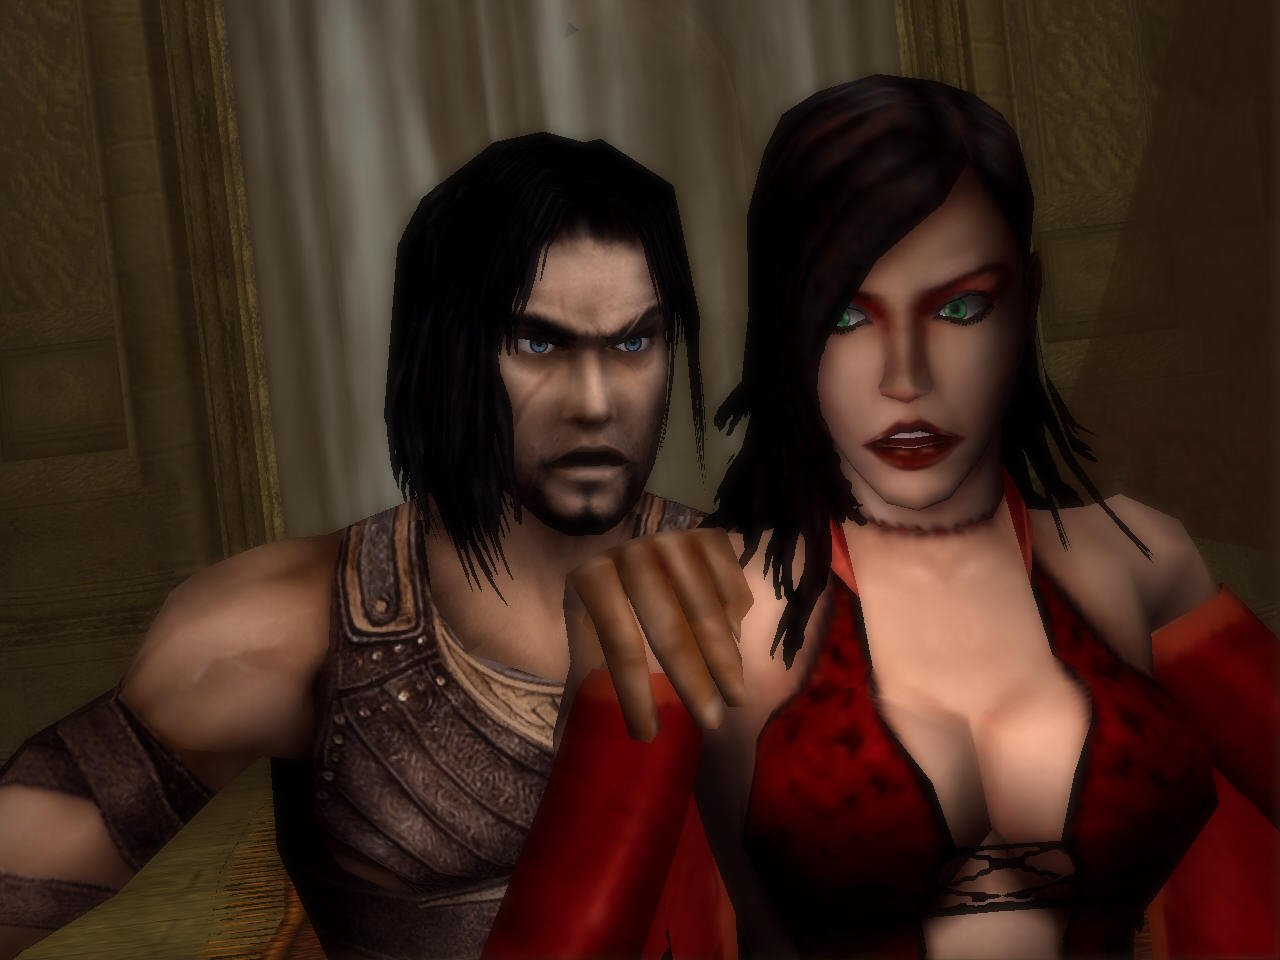 Pron video of prince of persia warriorwithin  nackt galleries